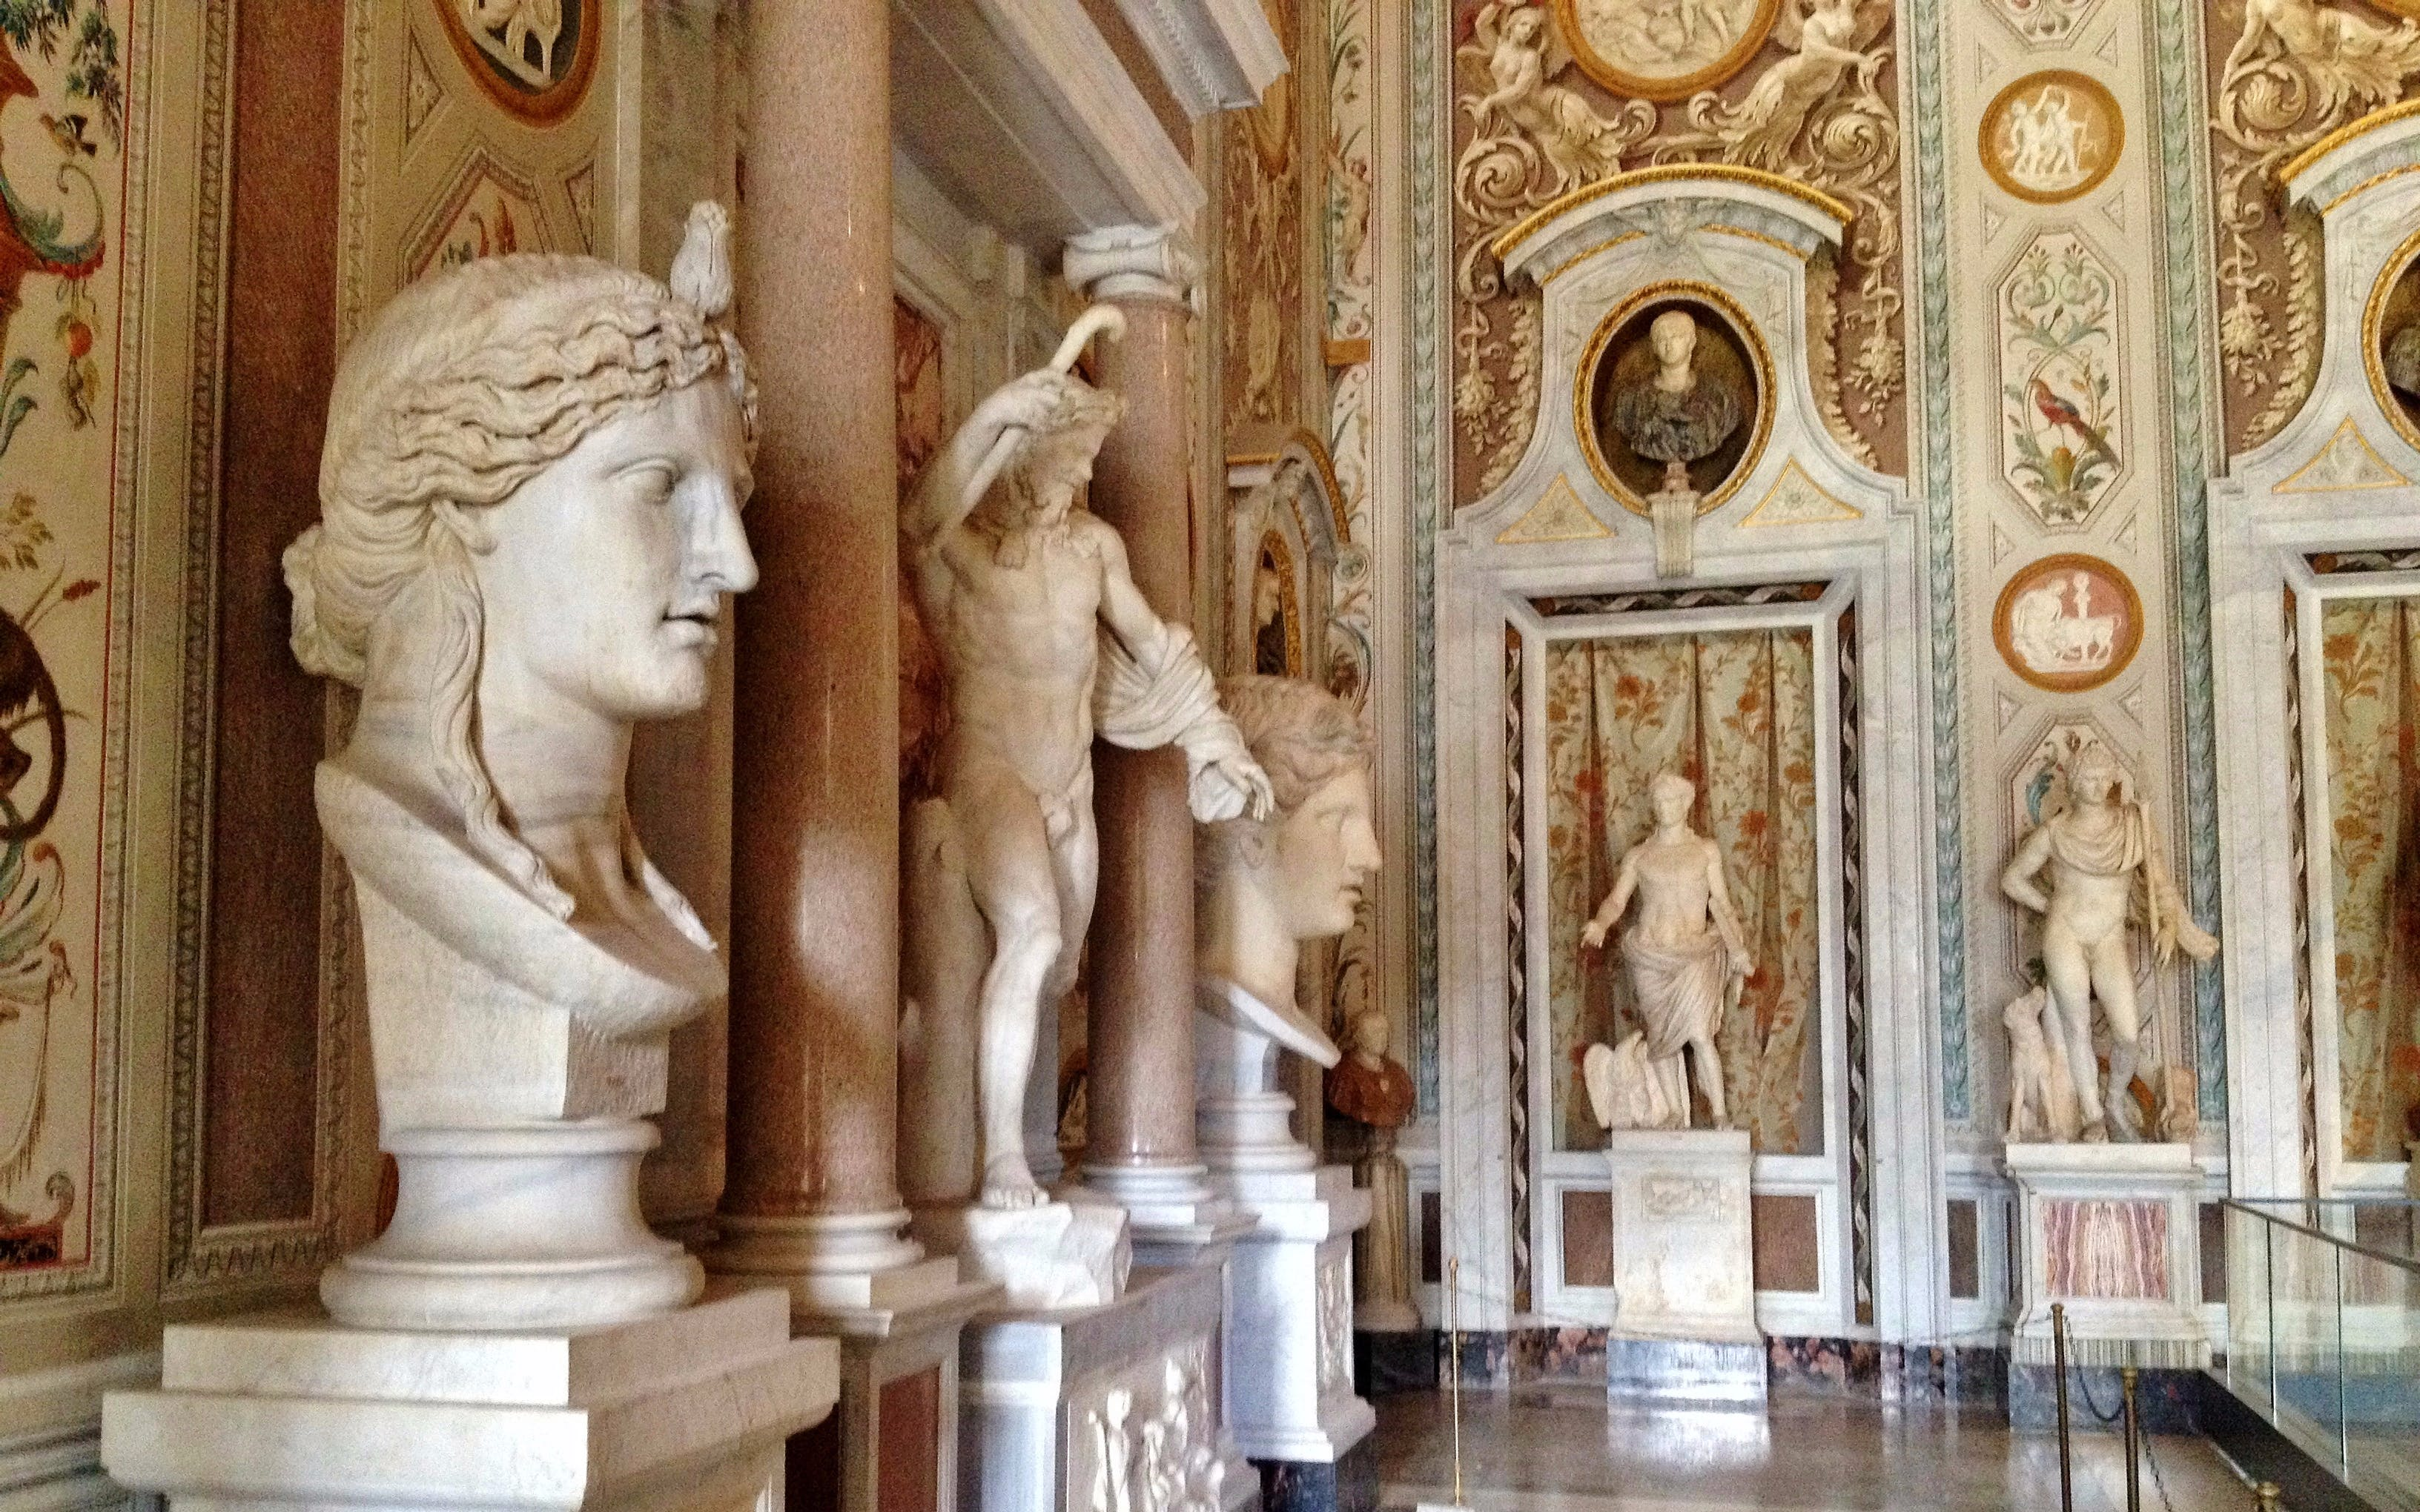 borghese gallery entrance tickets-2